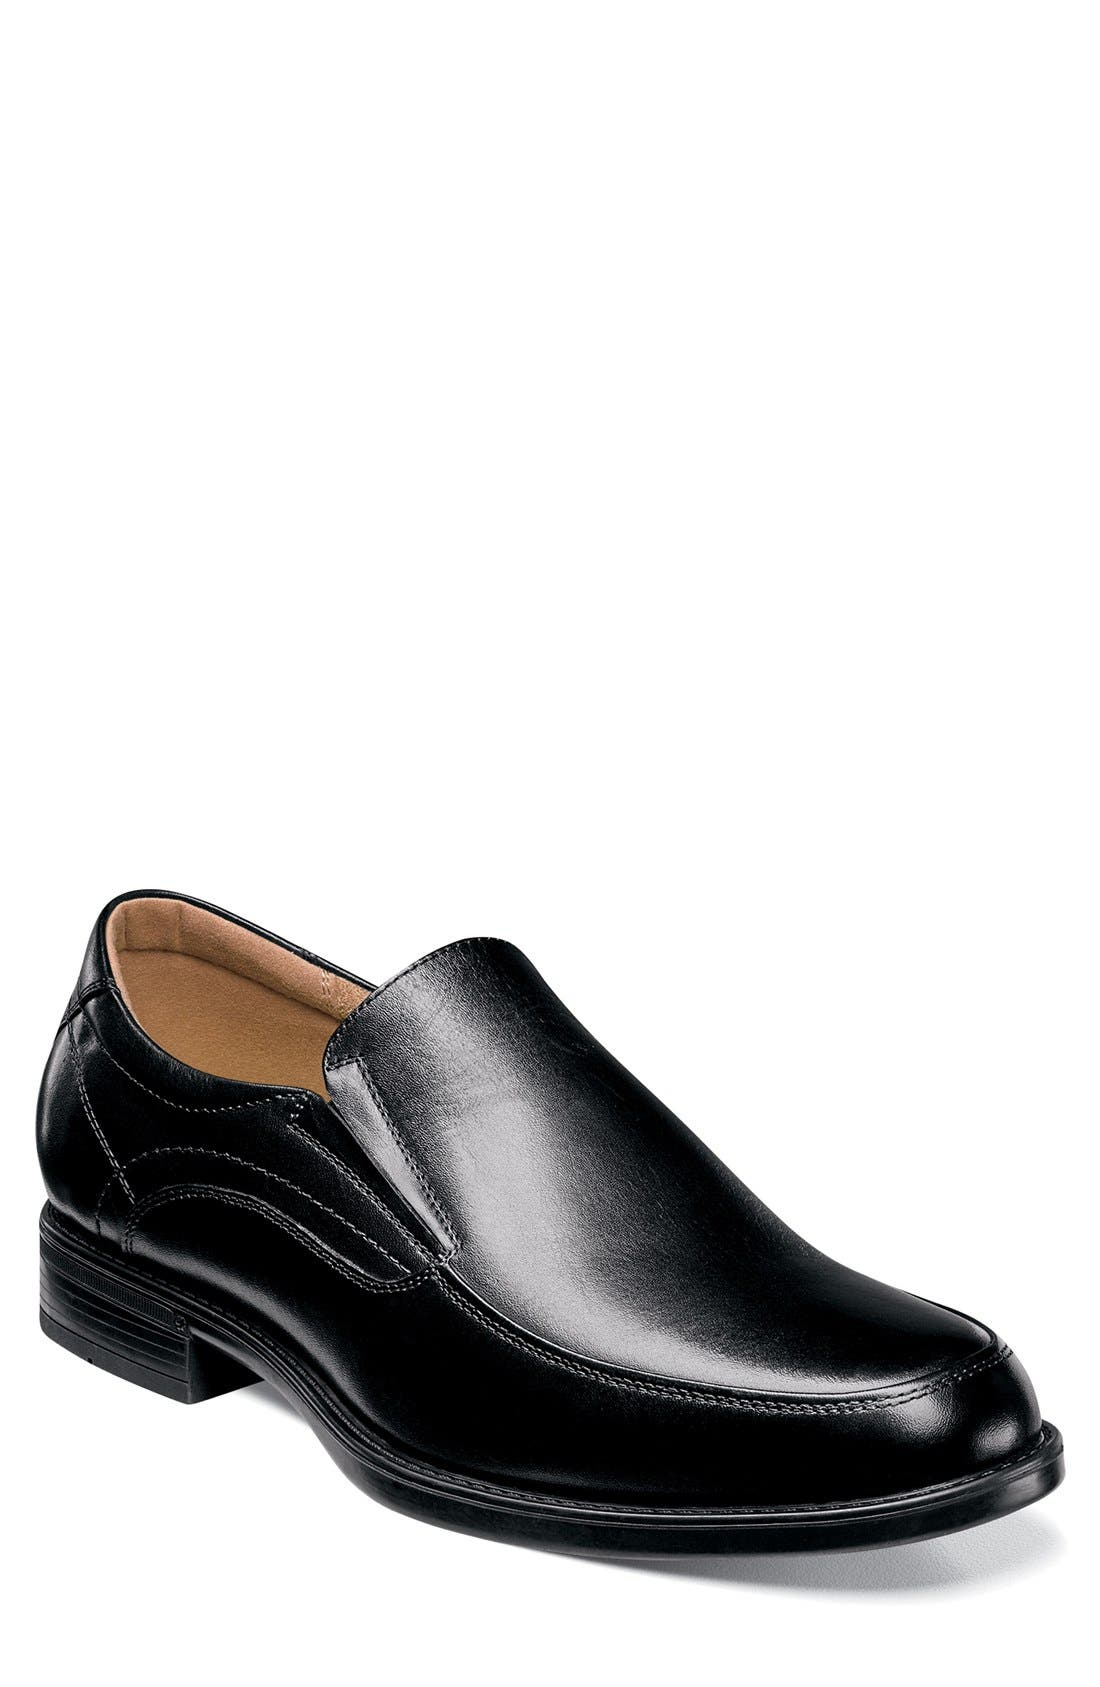 'Midtown' Slip-On,                         Main,                         color, Black Leather